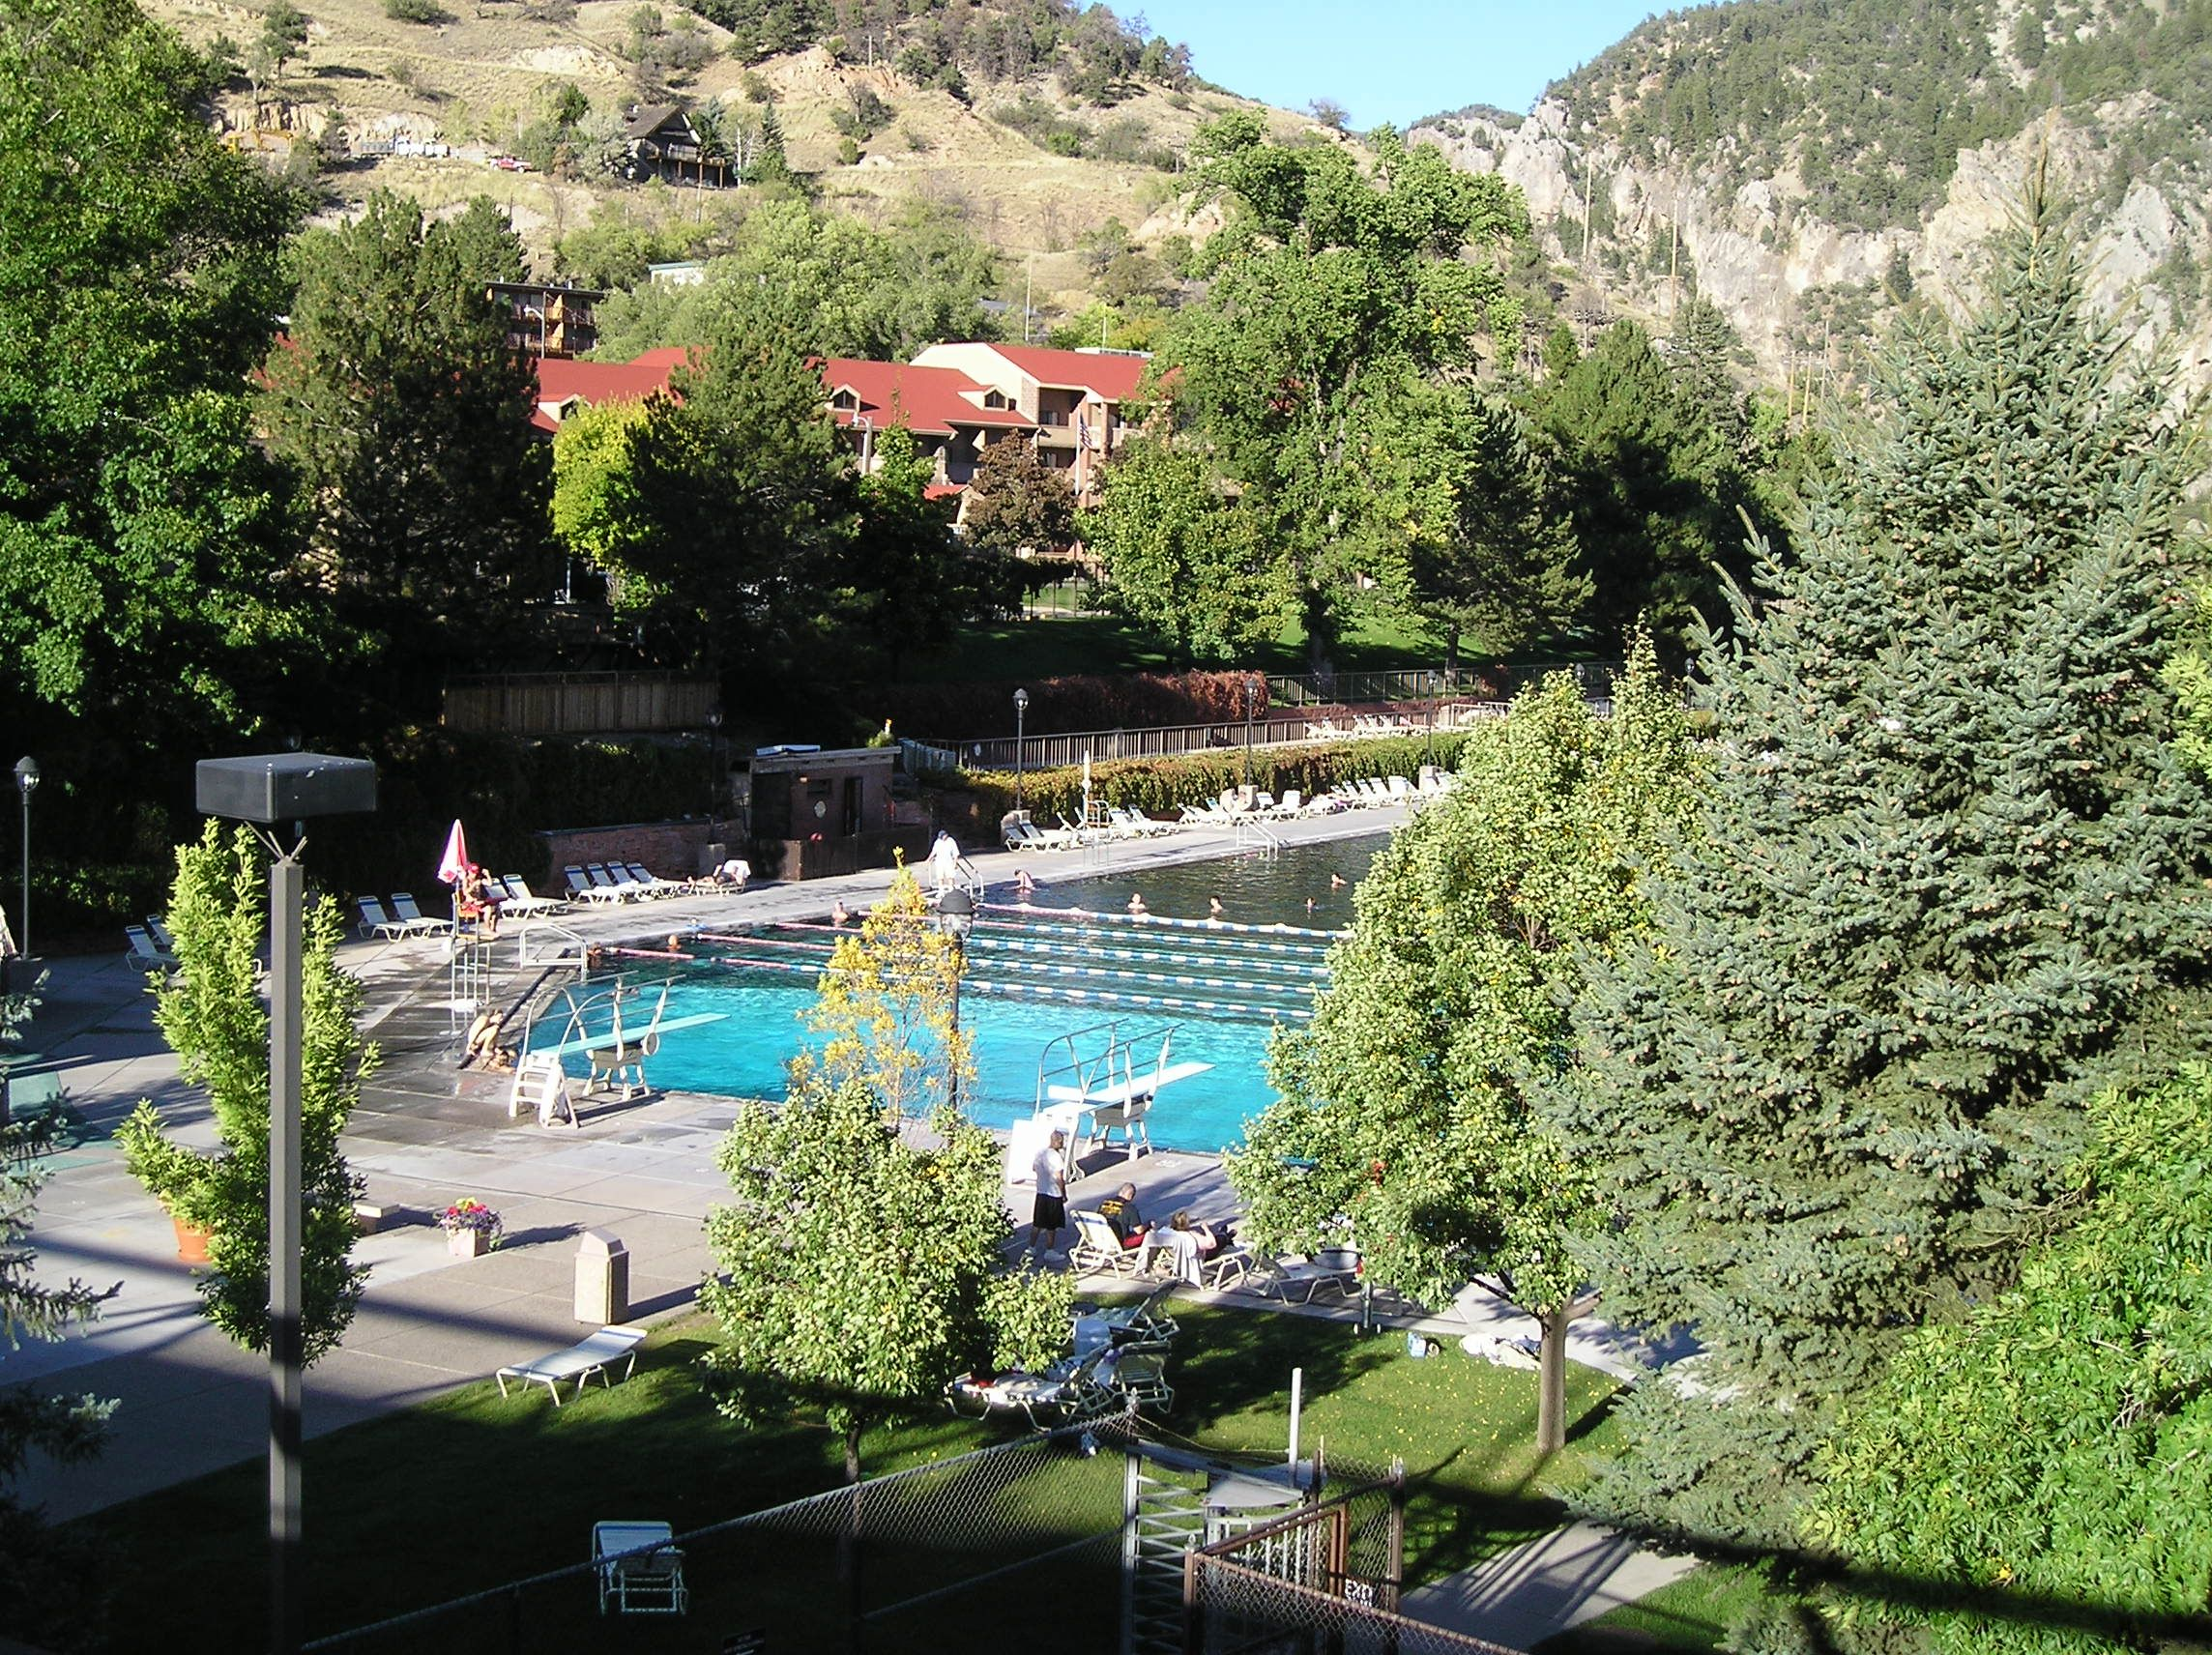 Hot Springs Lodge & Pool.  The lodge is in the trees above pool.